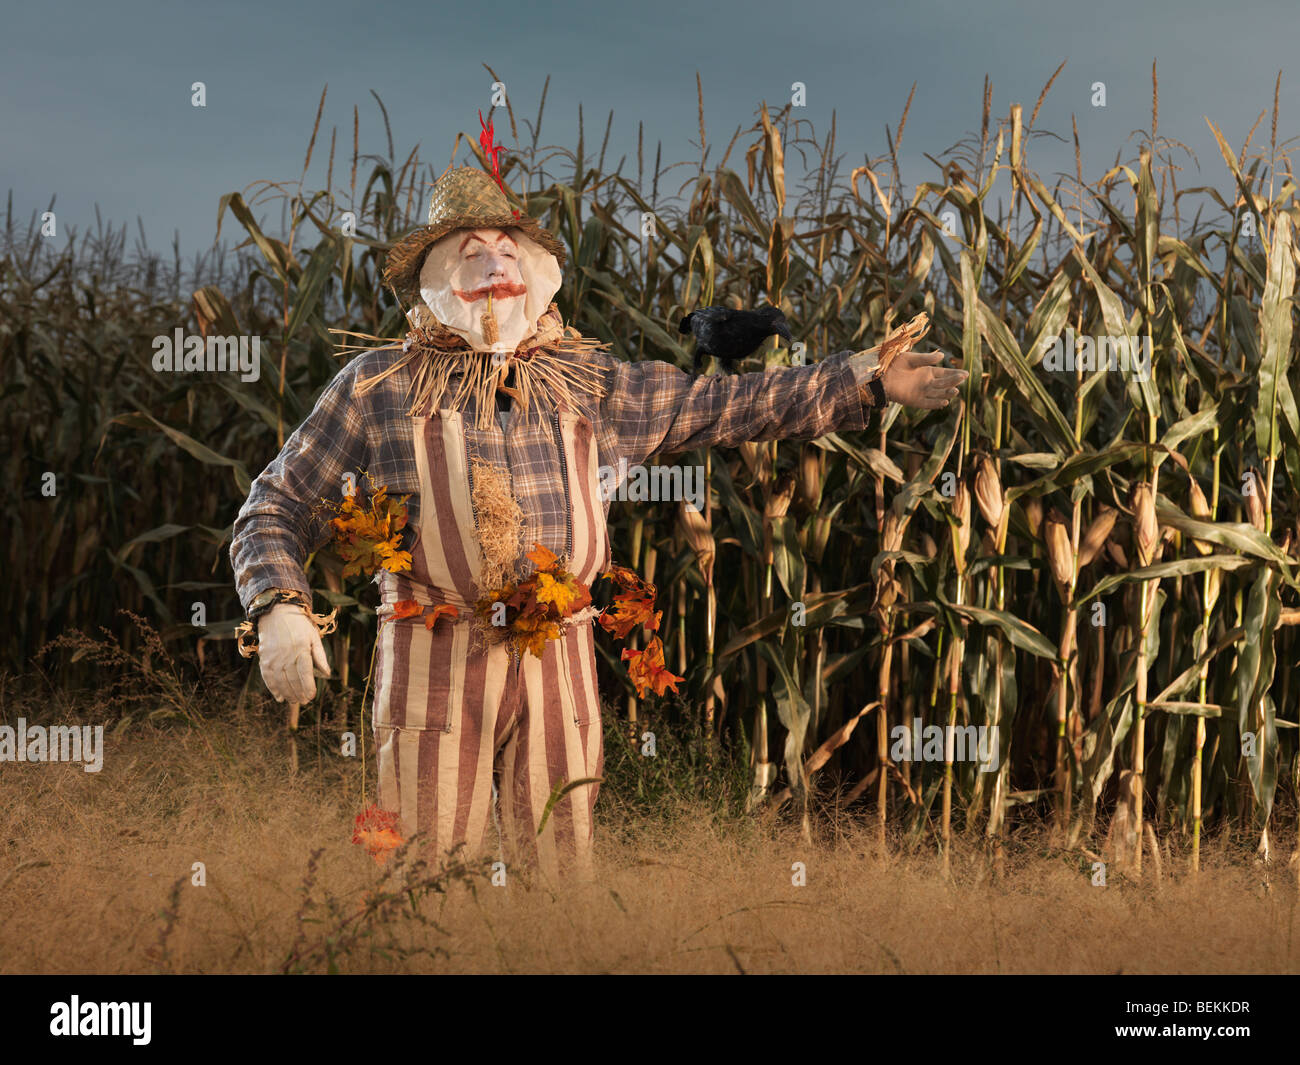 Scarecrow character in a corn field in fall - Stock Image